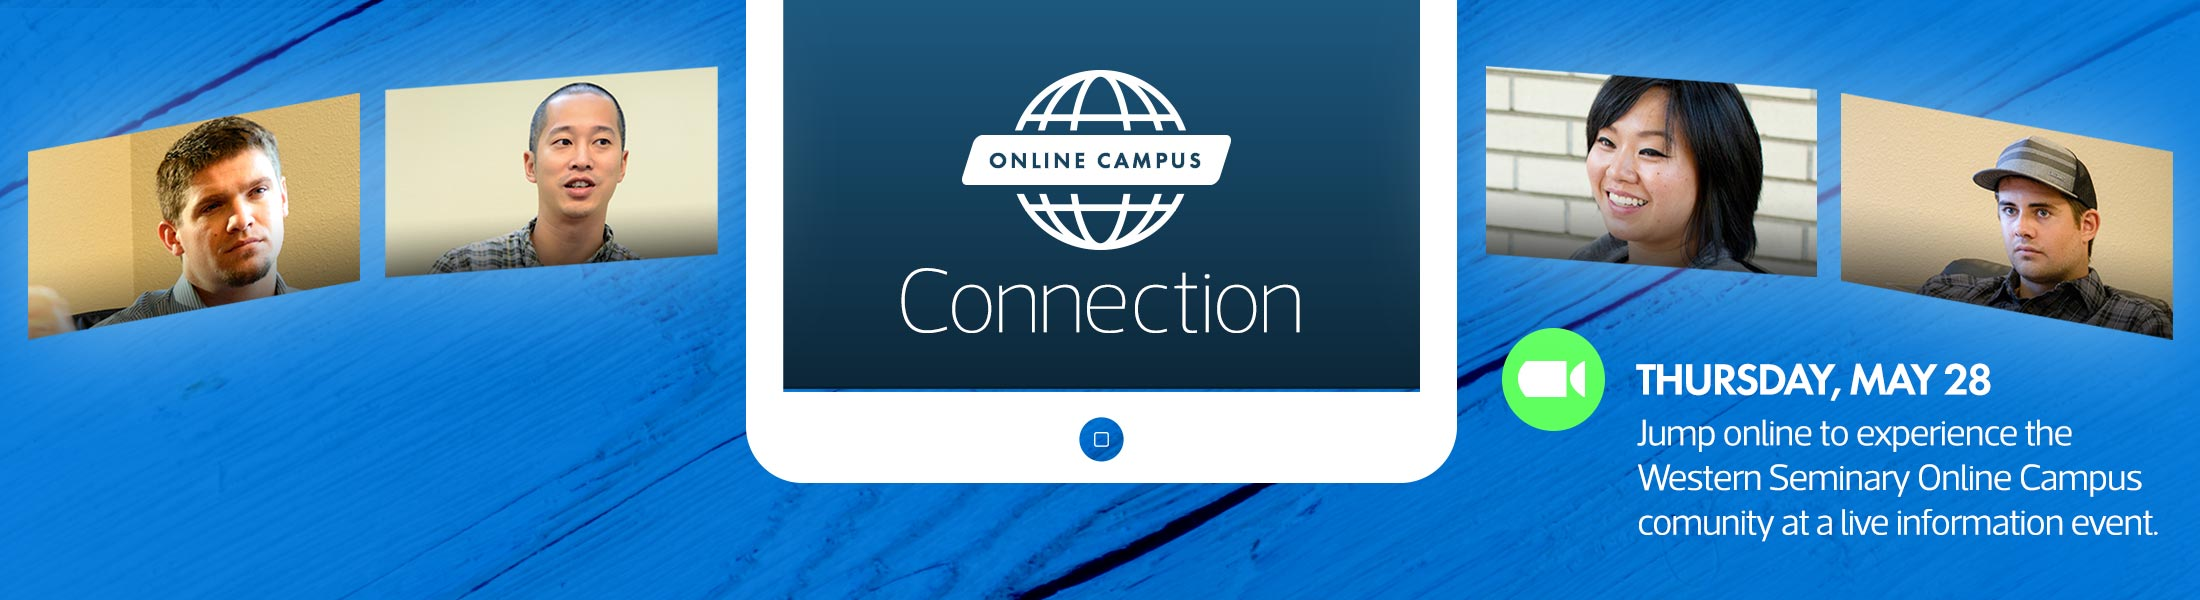 Get the scoop about Online Campus Connection - a prospective student information event for future online seminary students